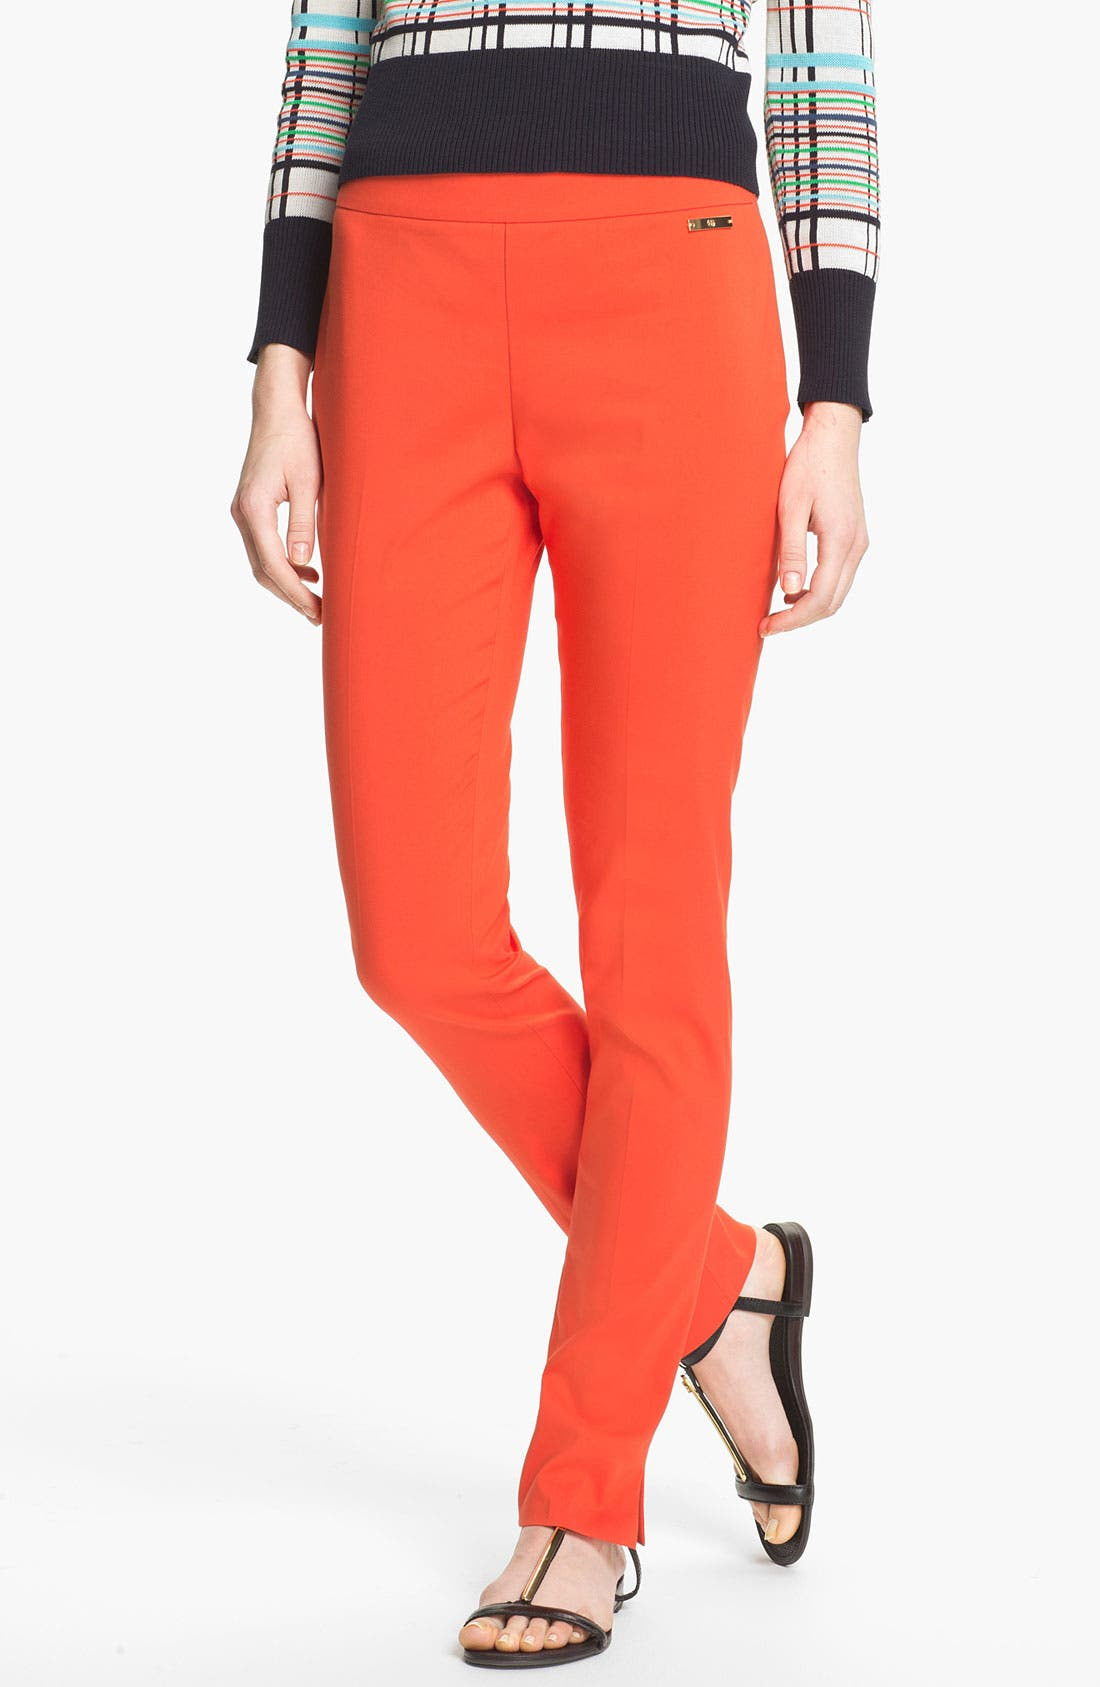 Main Image - Tory Burch 'Tabby' Skinny Pants